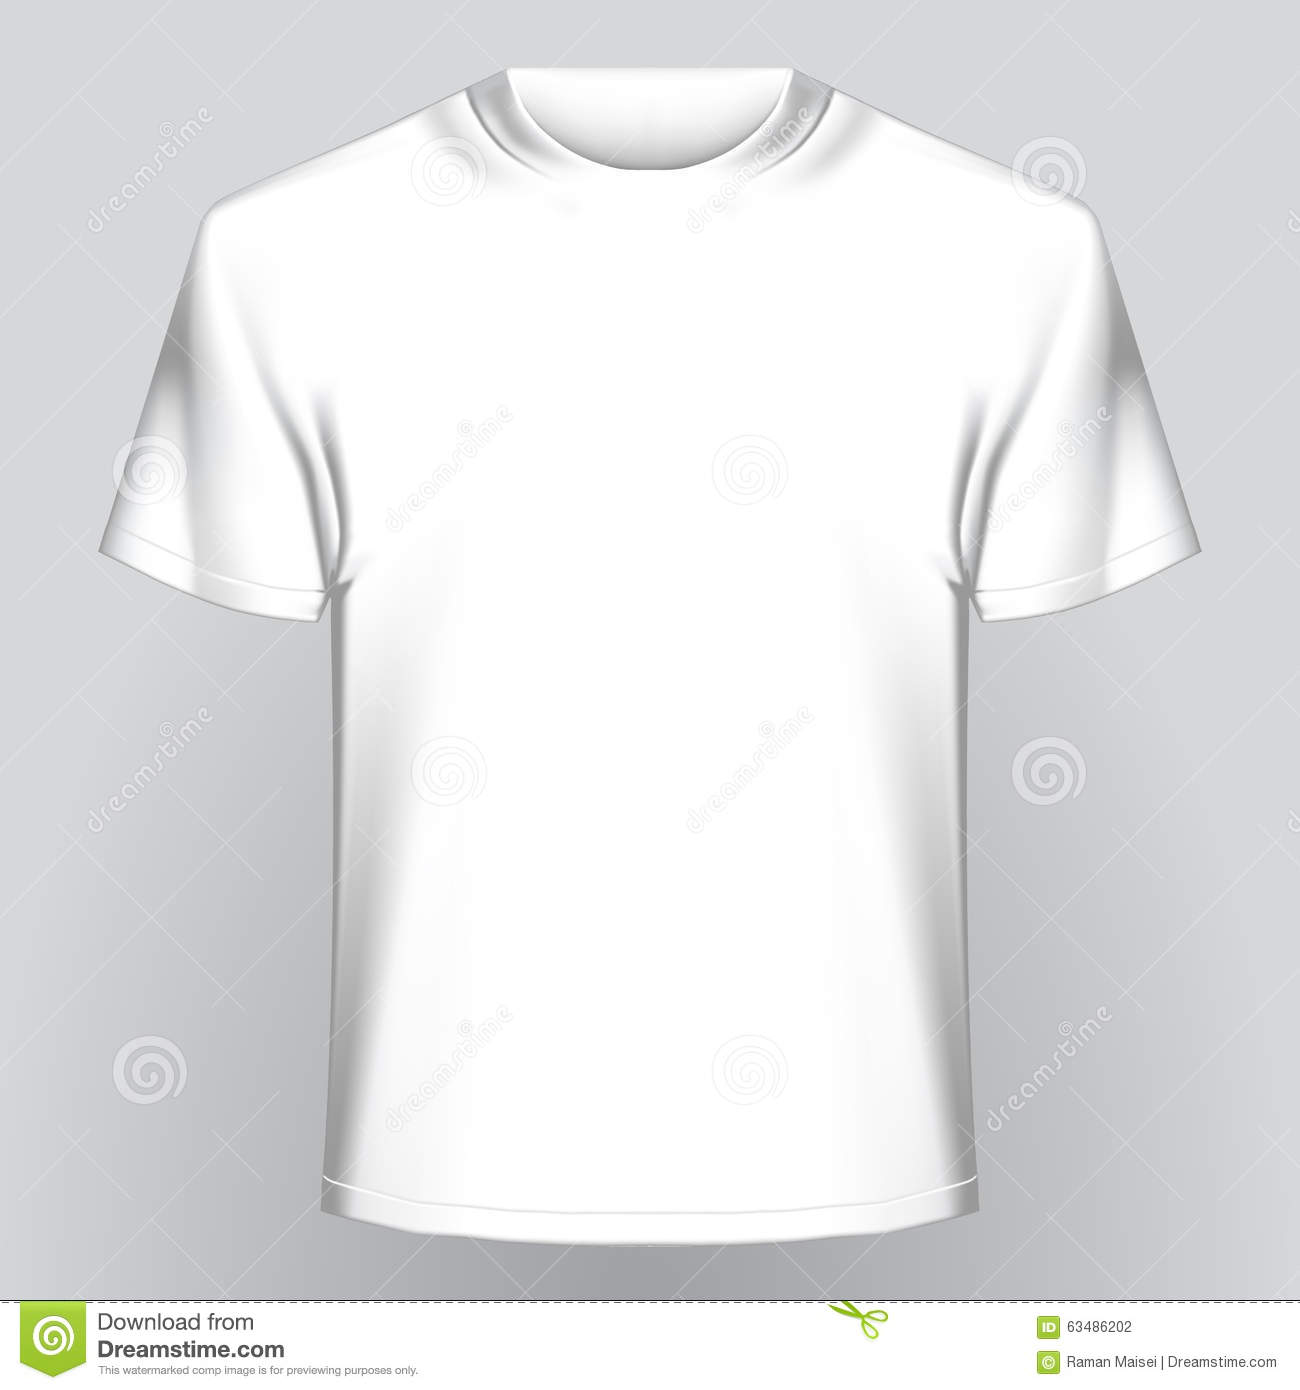 White t shirt eps - Black T Shirt Eps White Empty T Shirt Stock Vector